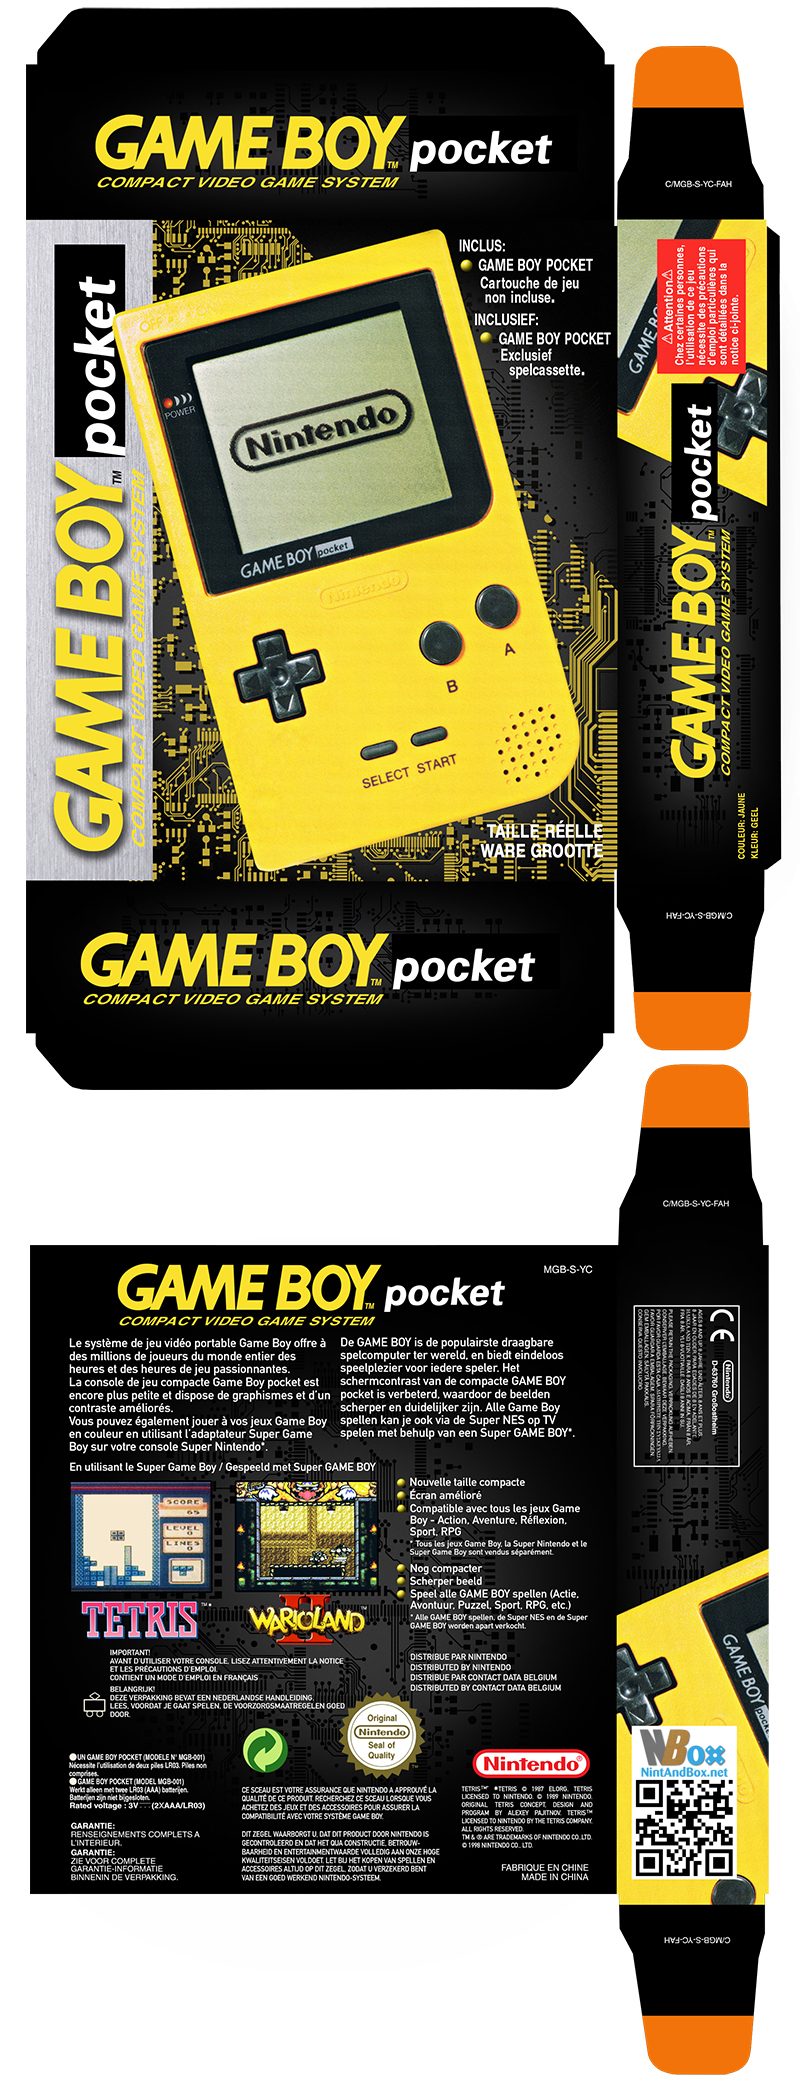 Console_GameBoyPocket_Miniature2.jpg